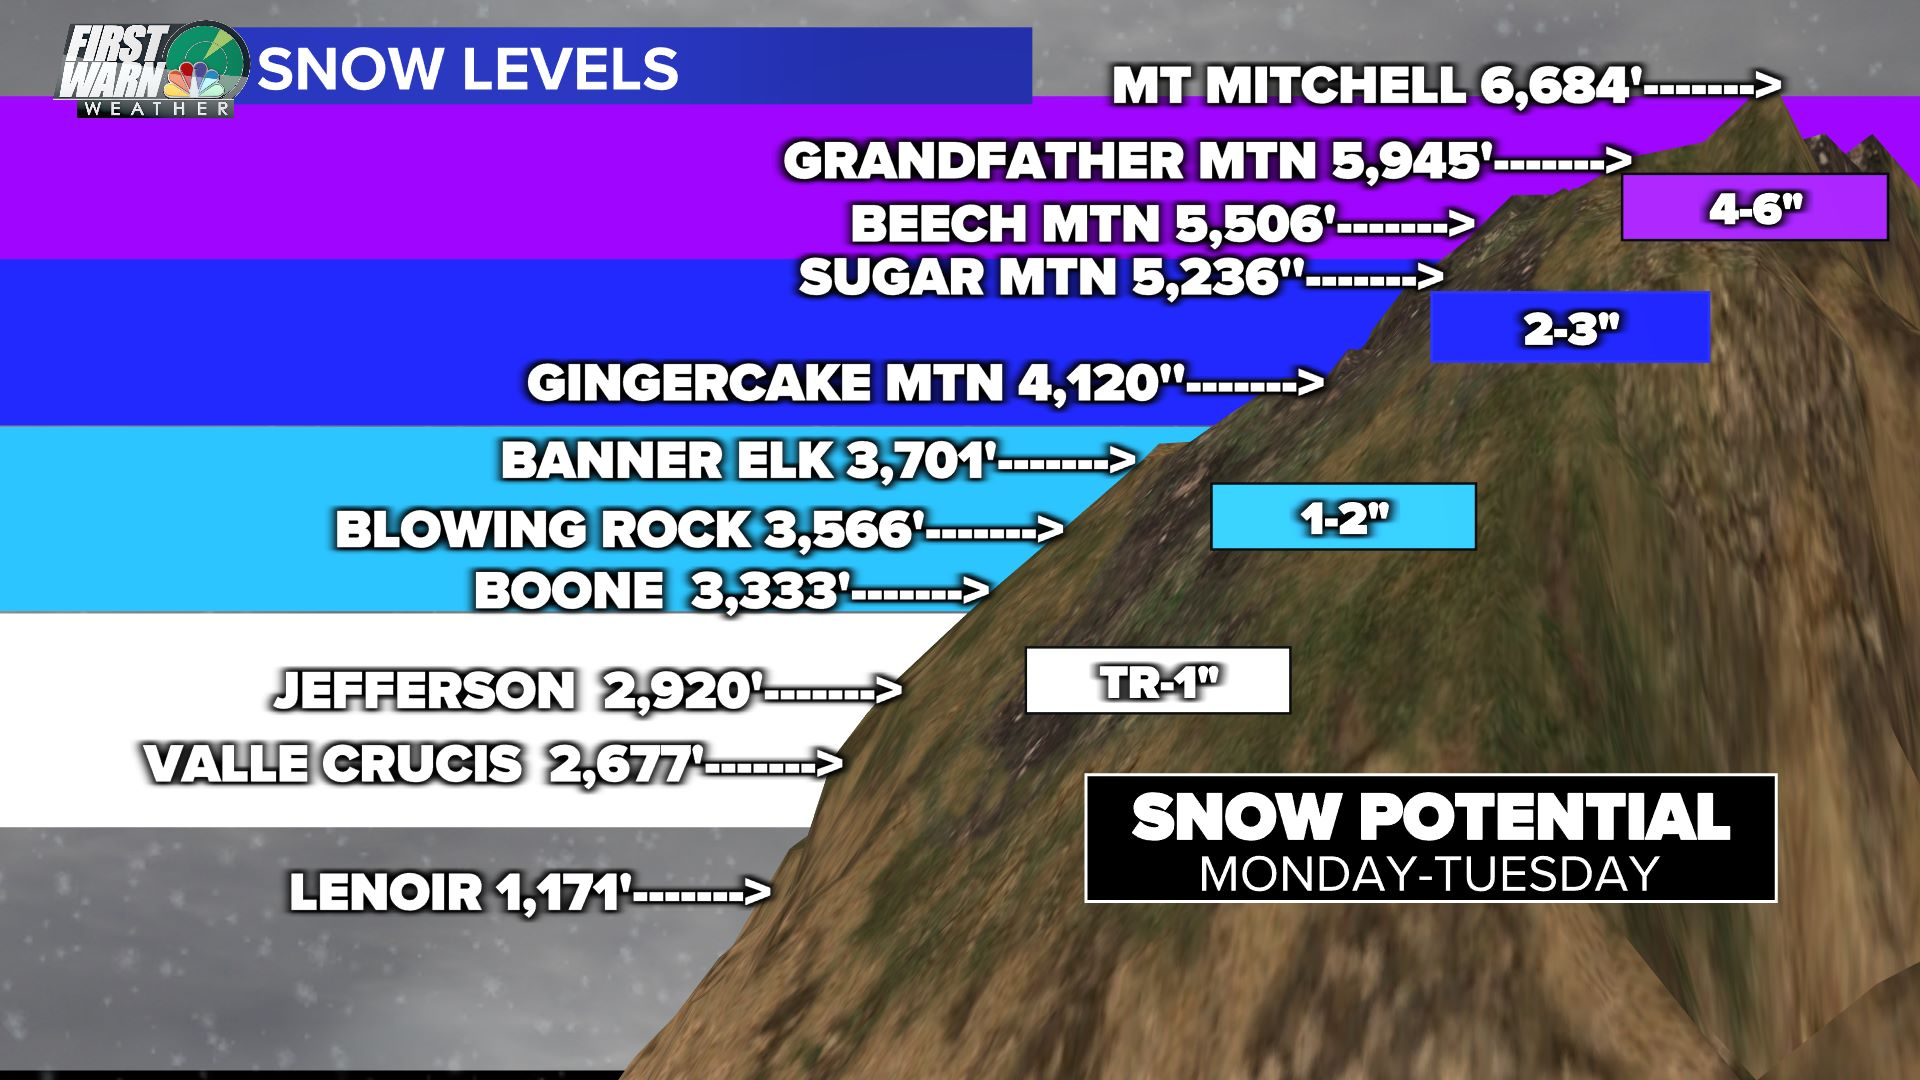 First snow of the season expected Monday night into Tuesday - Nov 30-Dec 1, 2020